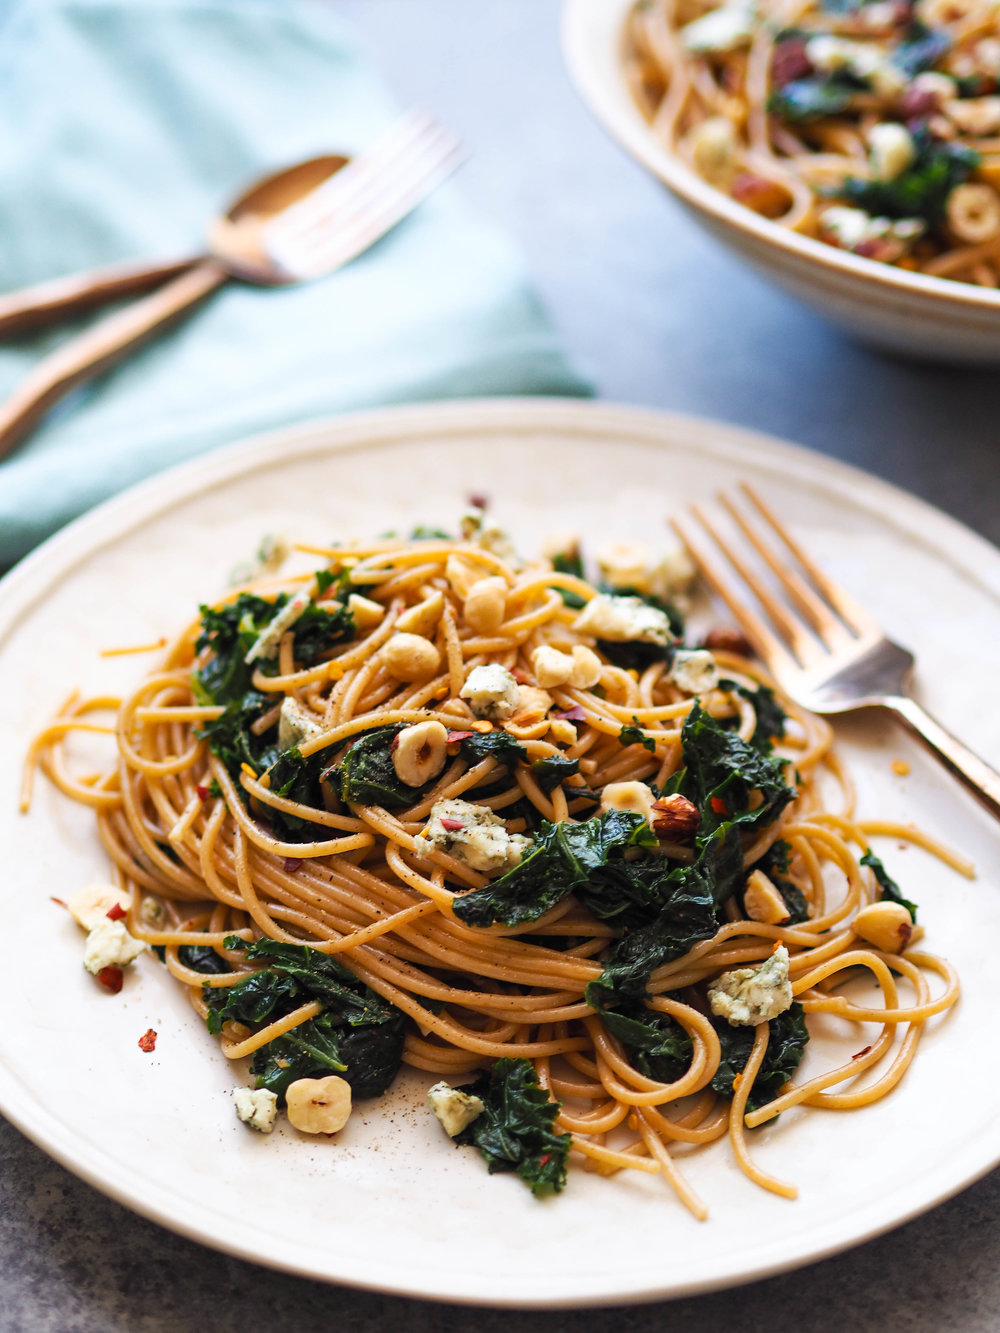 spaghetti-with-greens-and-gorgonzola-4.jpg